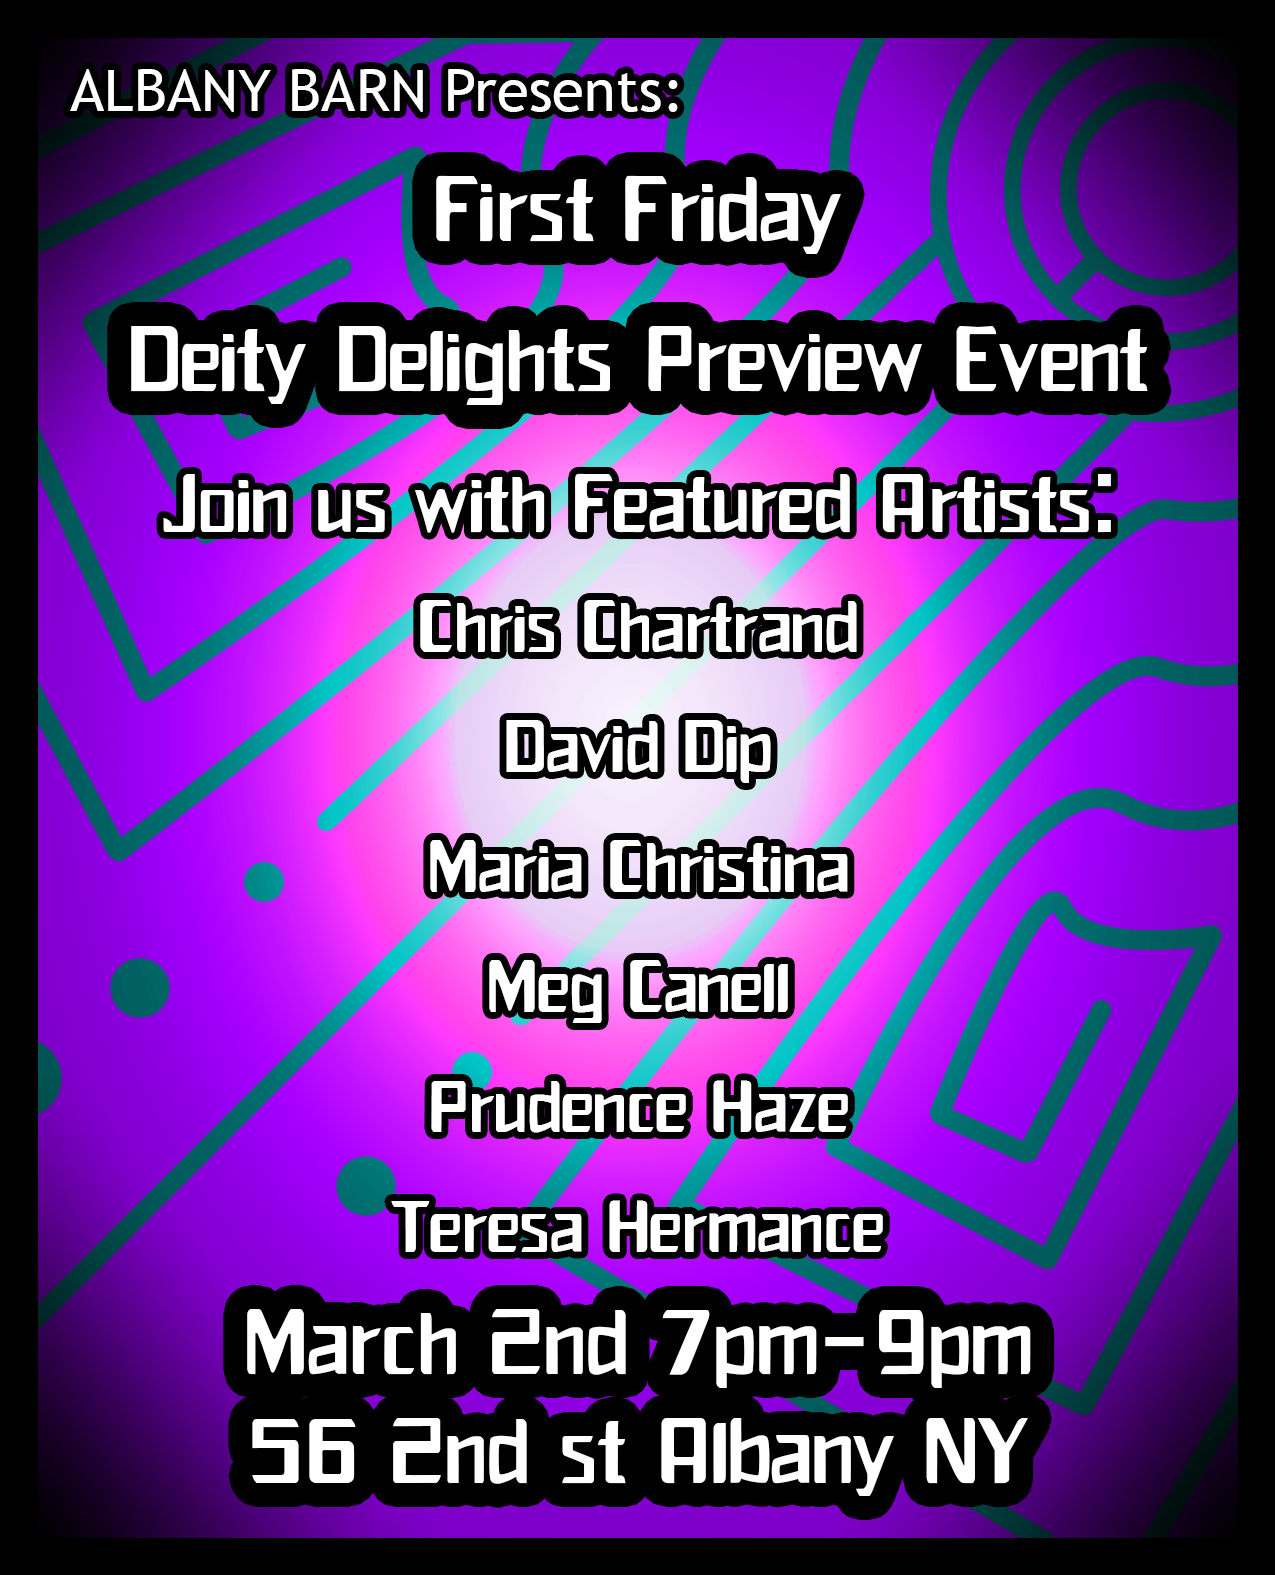 Deity Delights Preview Event